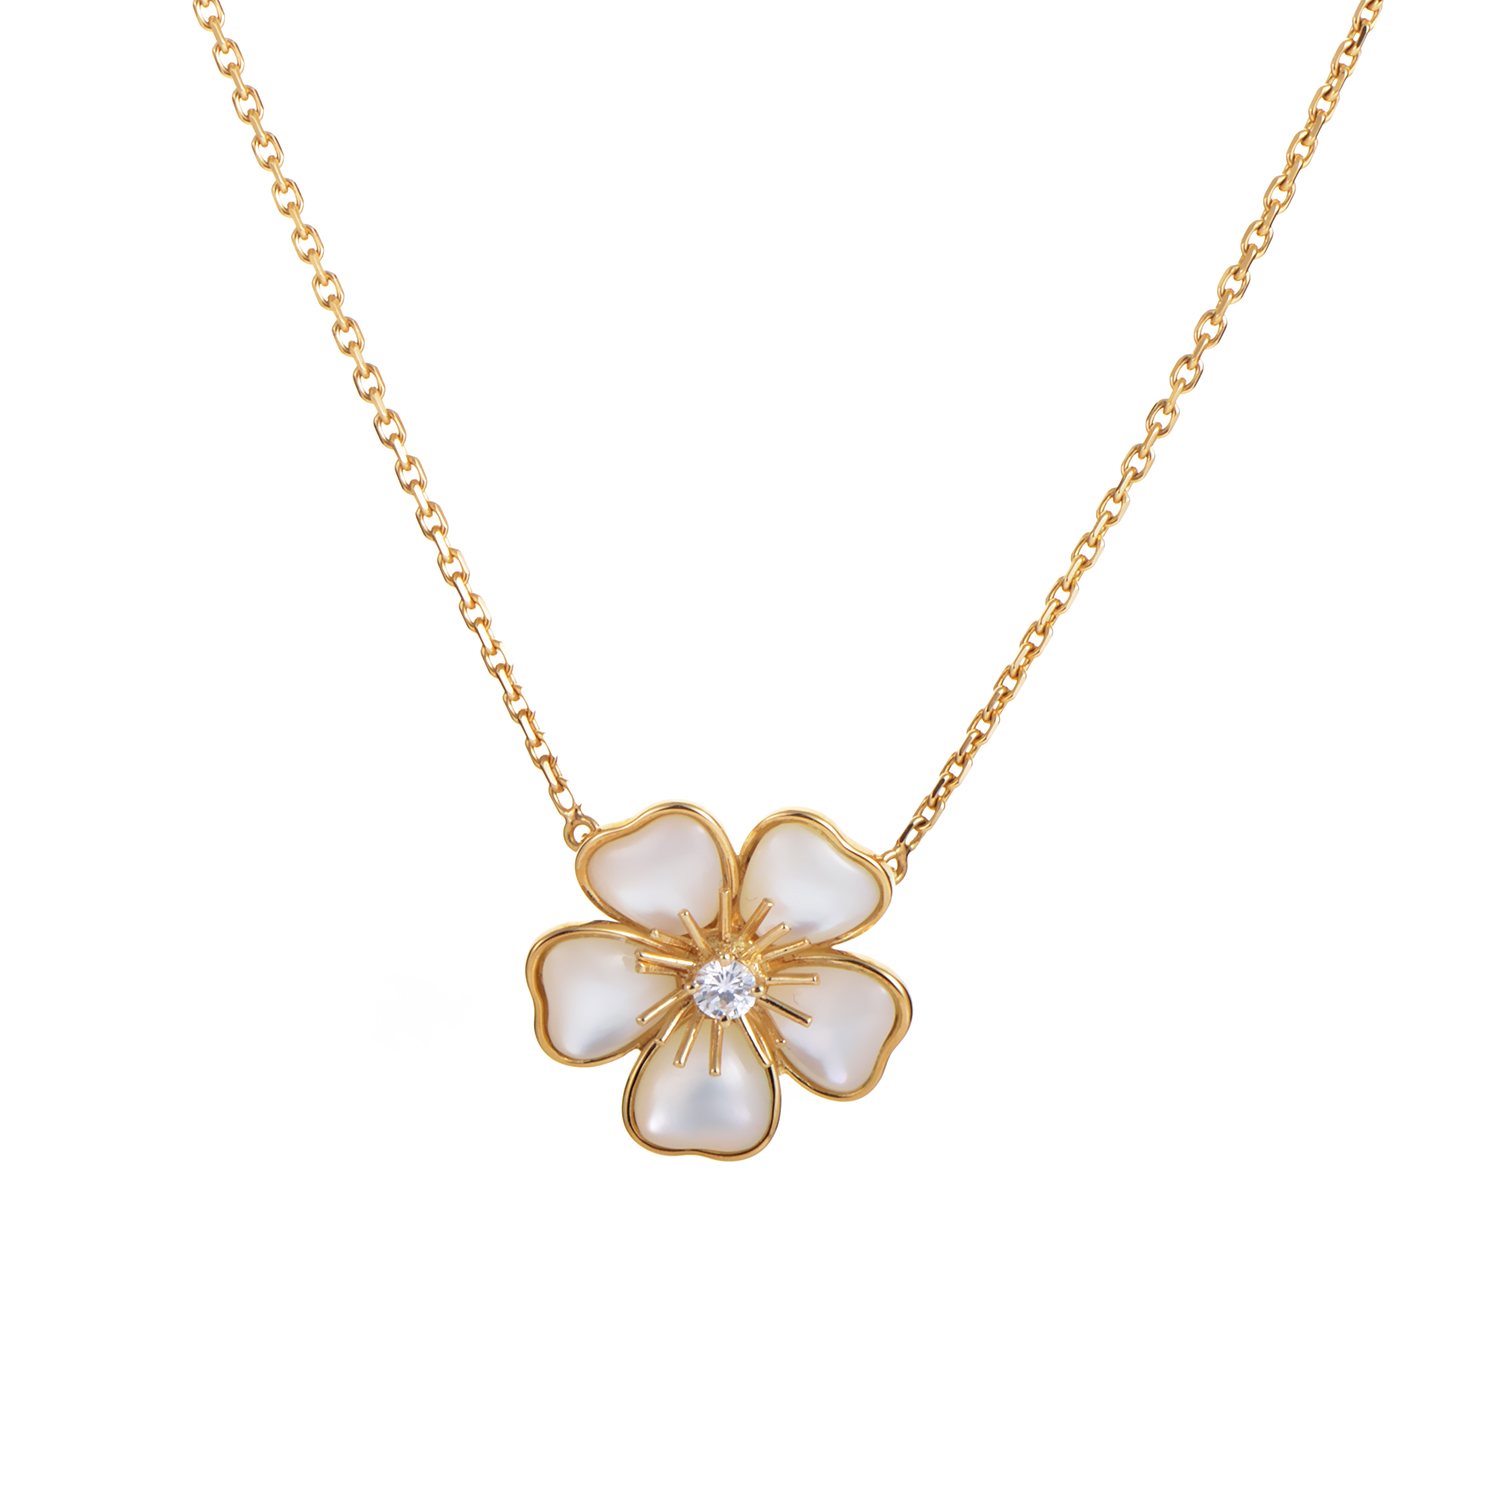 Van Cleef & Arpels Mimi Nerval 18K Yellow Gold Mother of Pearl Flower Necklace